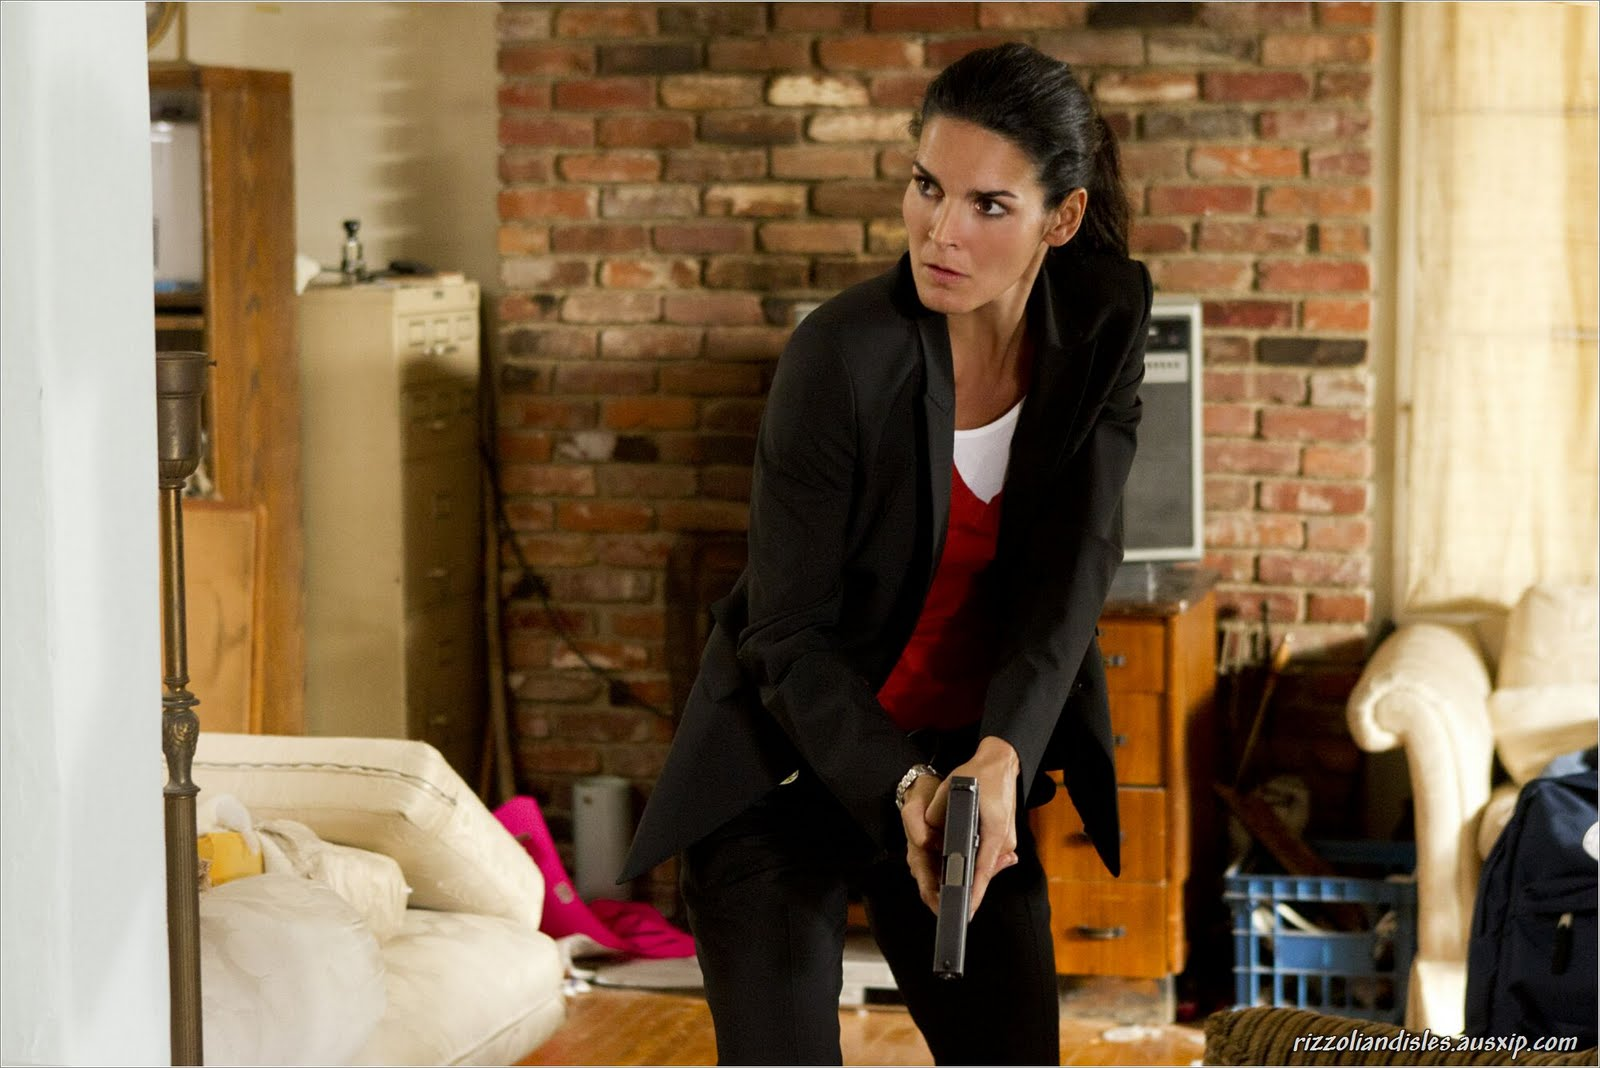 Angie harmon smoking car tuning - Absolutely Angie A Fan Site With News Photos And Commentary Related To Rizzoli Isles Star Angie Harmon